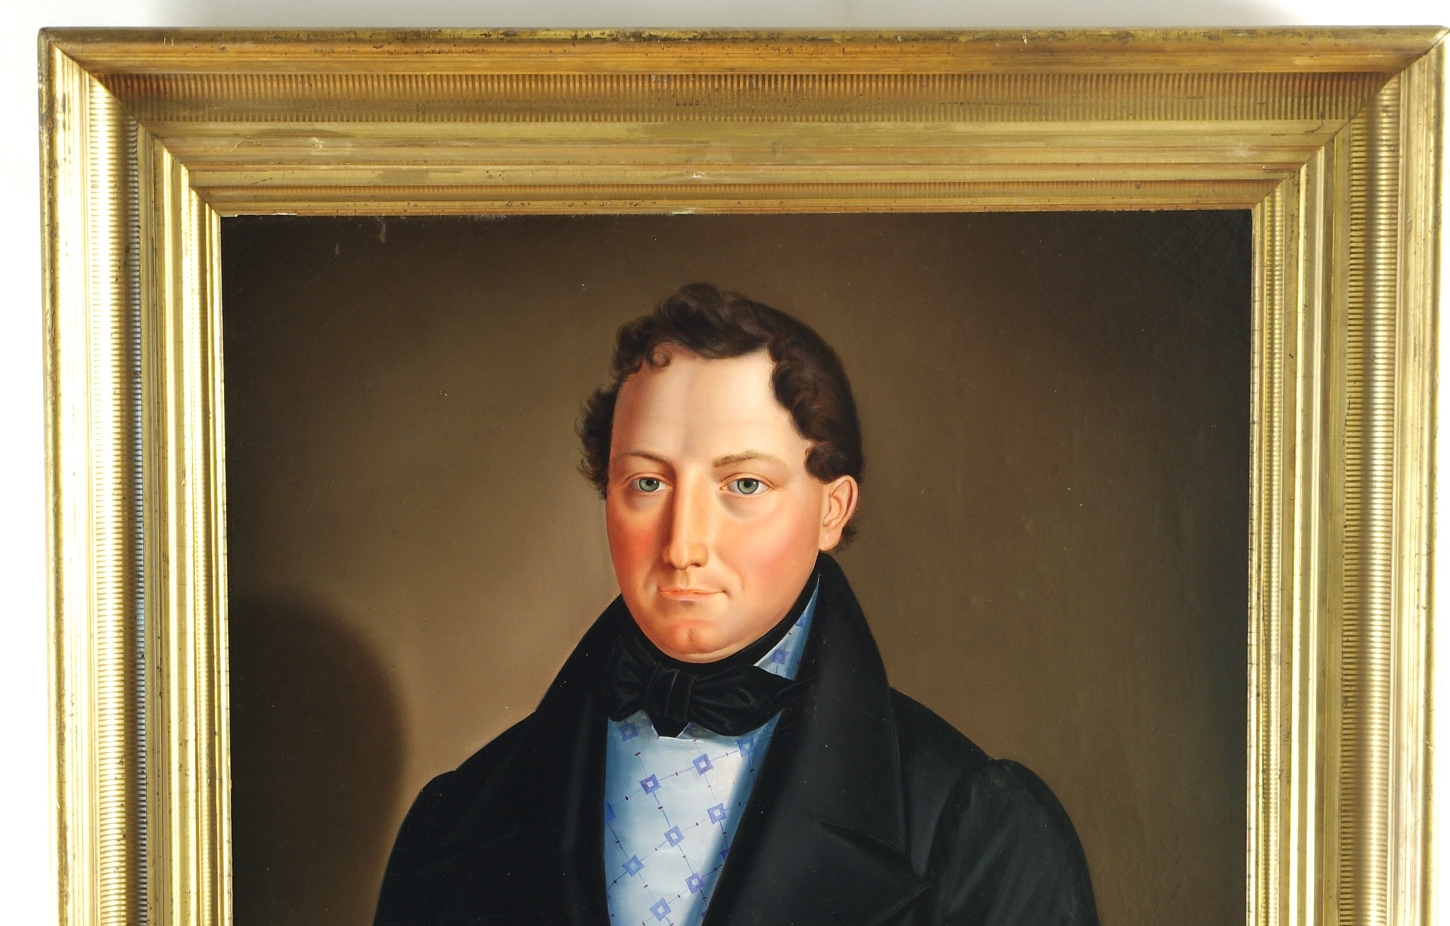 View 3: Biedermeier Portrait of a Gentleman, c. 1820